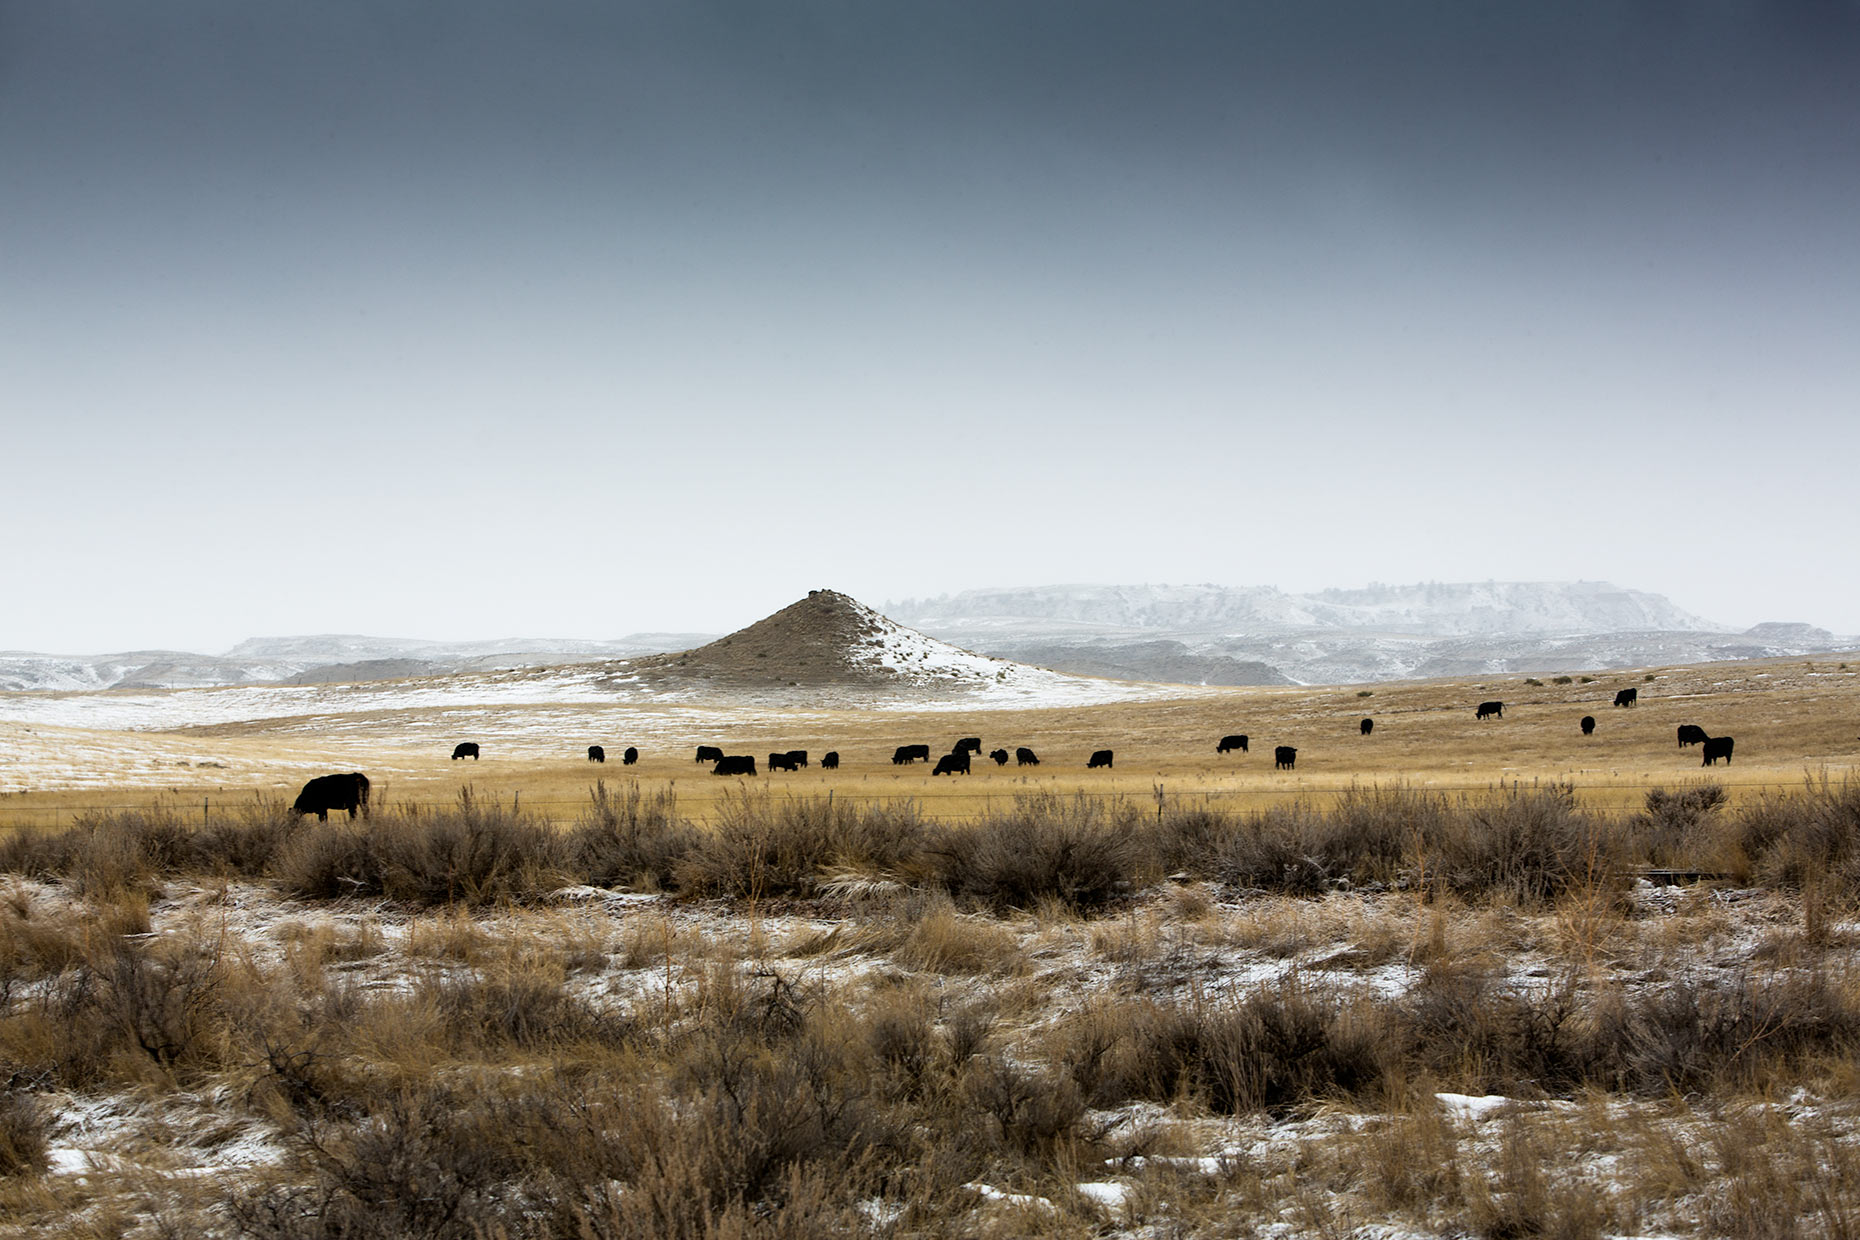 Cows-in-winter-prairie-scott-gable